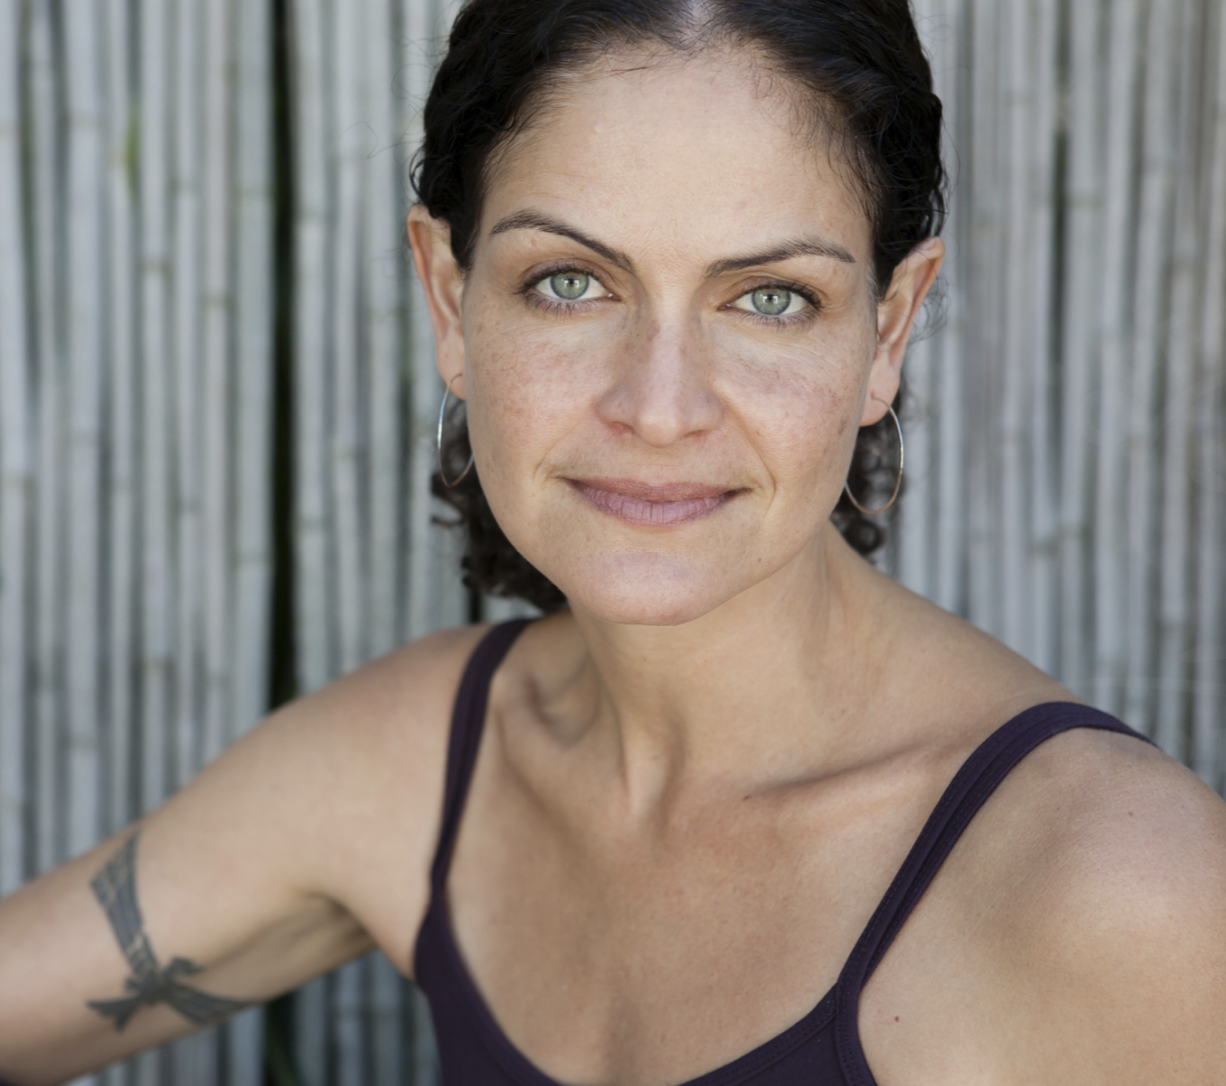 Trauma & Social Justice: Personal, Collective & Interpersonal Healing - Begins April 8, 2019. In this upcoming online workshop Hala will be sharing a somatic and socio-political framework of personal, interpersonal and systemic trauma and how this manifests in individuals and their communities. In addition to exploring tools from the growing field of trauma research, yoga, and mindfulness, we will be investigating the link between personal trauma and institutionalized and normalized systems of oppression.